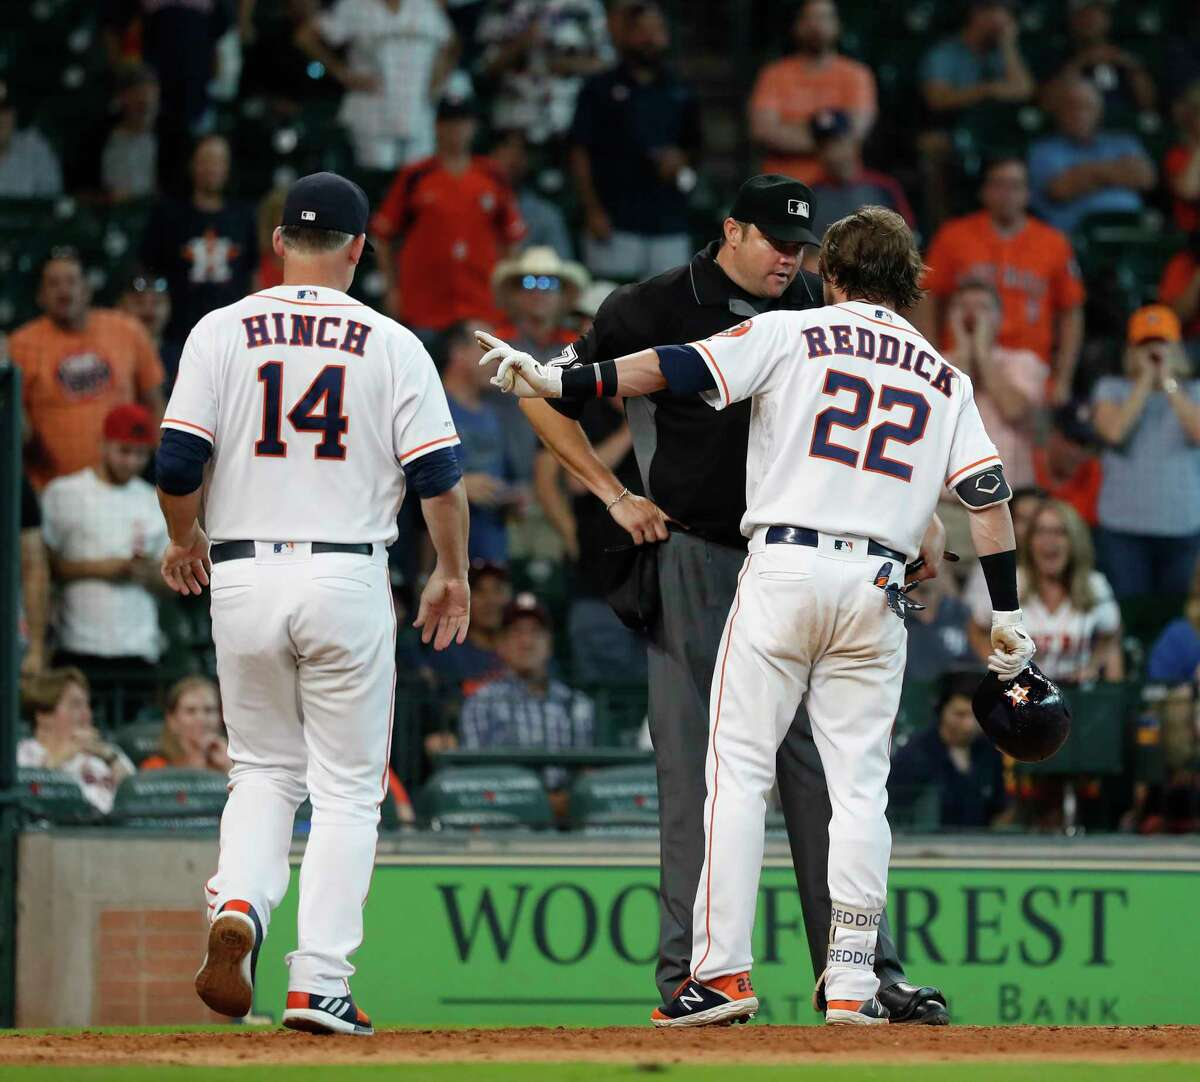 Houston Astros Josh Reddick (22) is ejected by home plate umpire Jordan Baker, after Reddick argued with him after Reddick thought he had drawn a walk, but was called out on stikes during the ninth inning of an MLB baseball game at Minute Maid Park, Thursday, August 29, 2019.